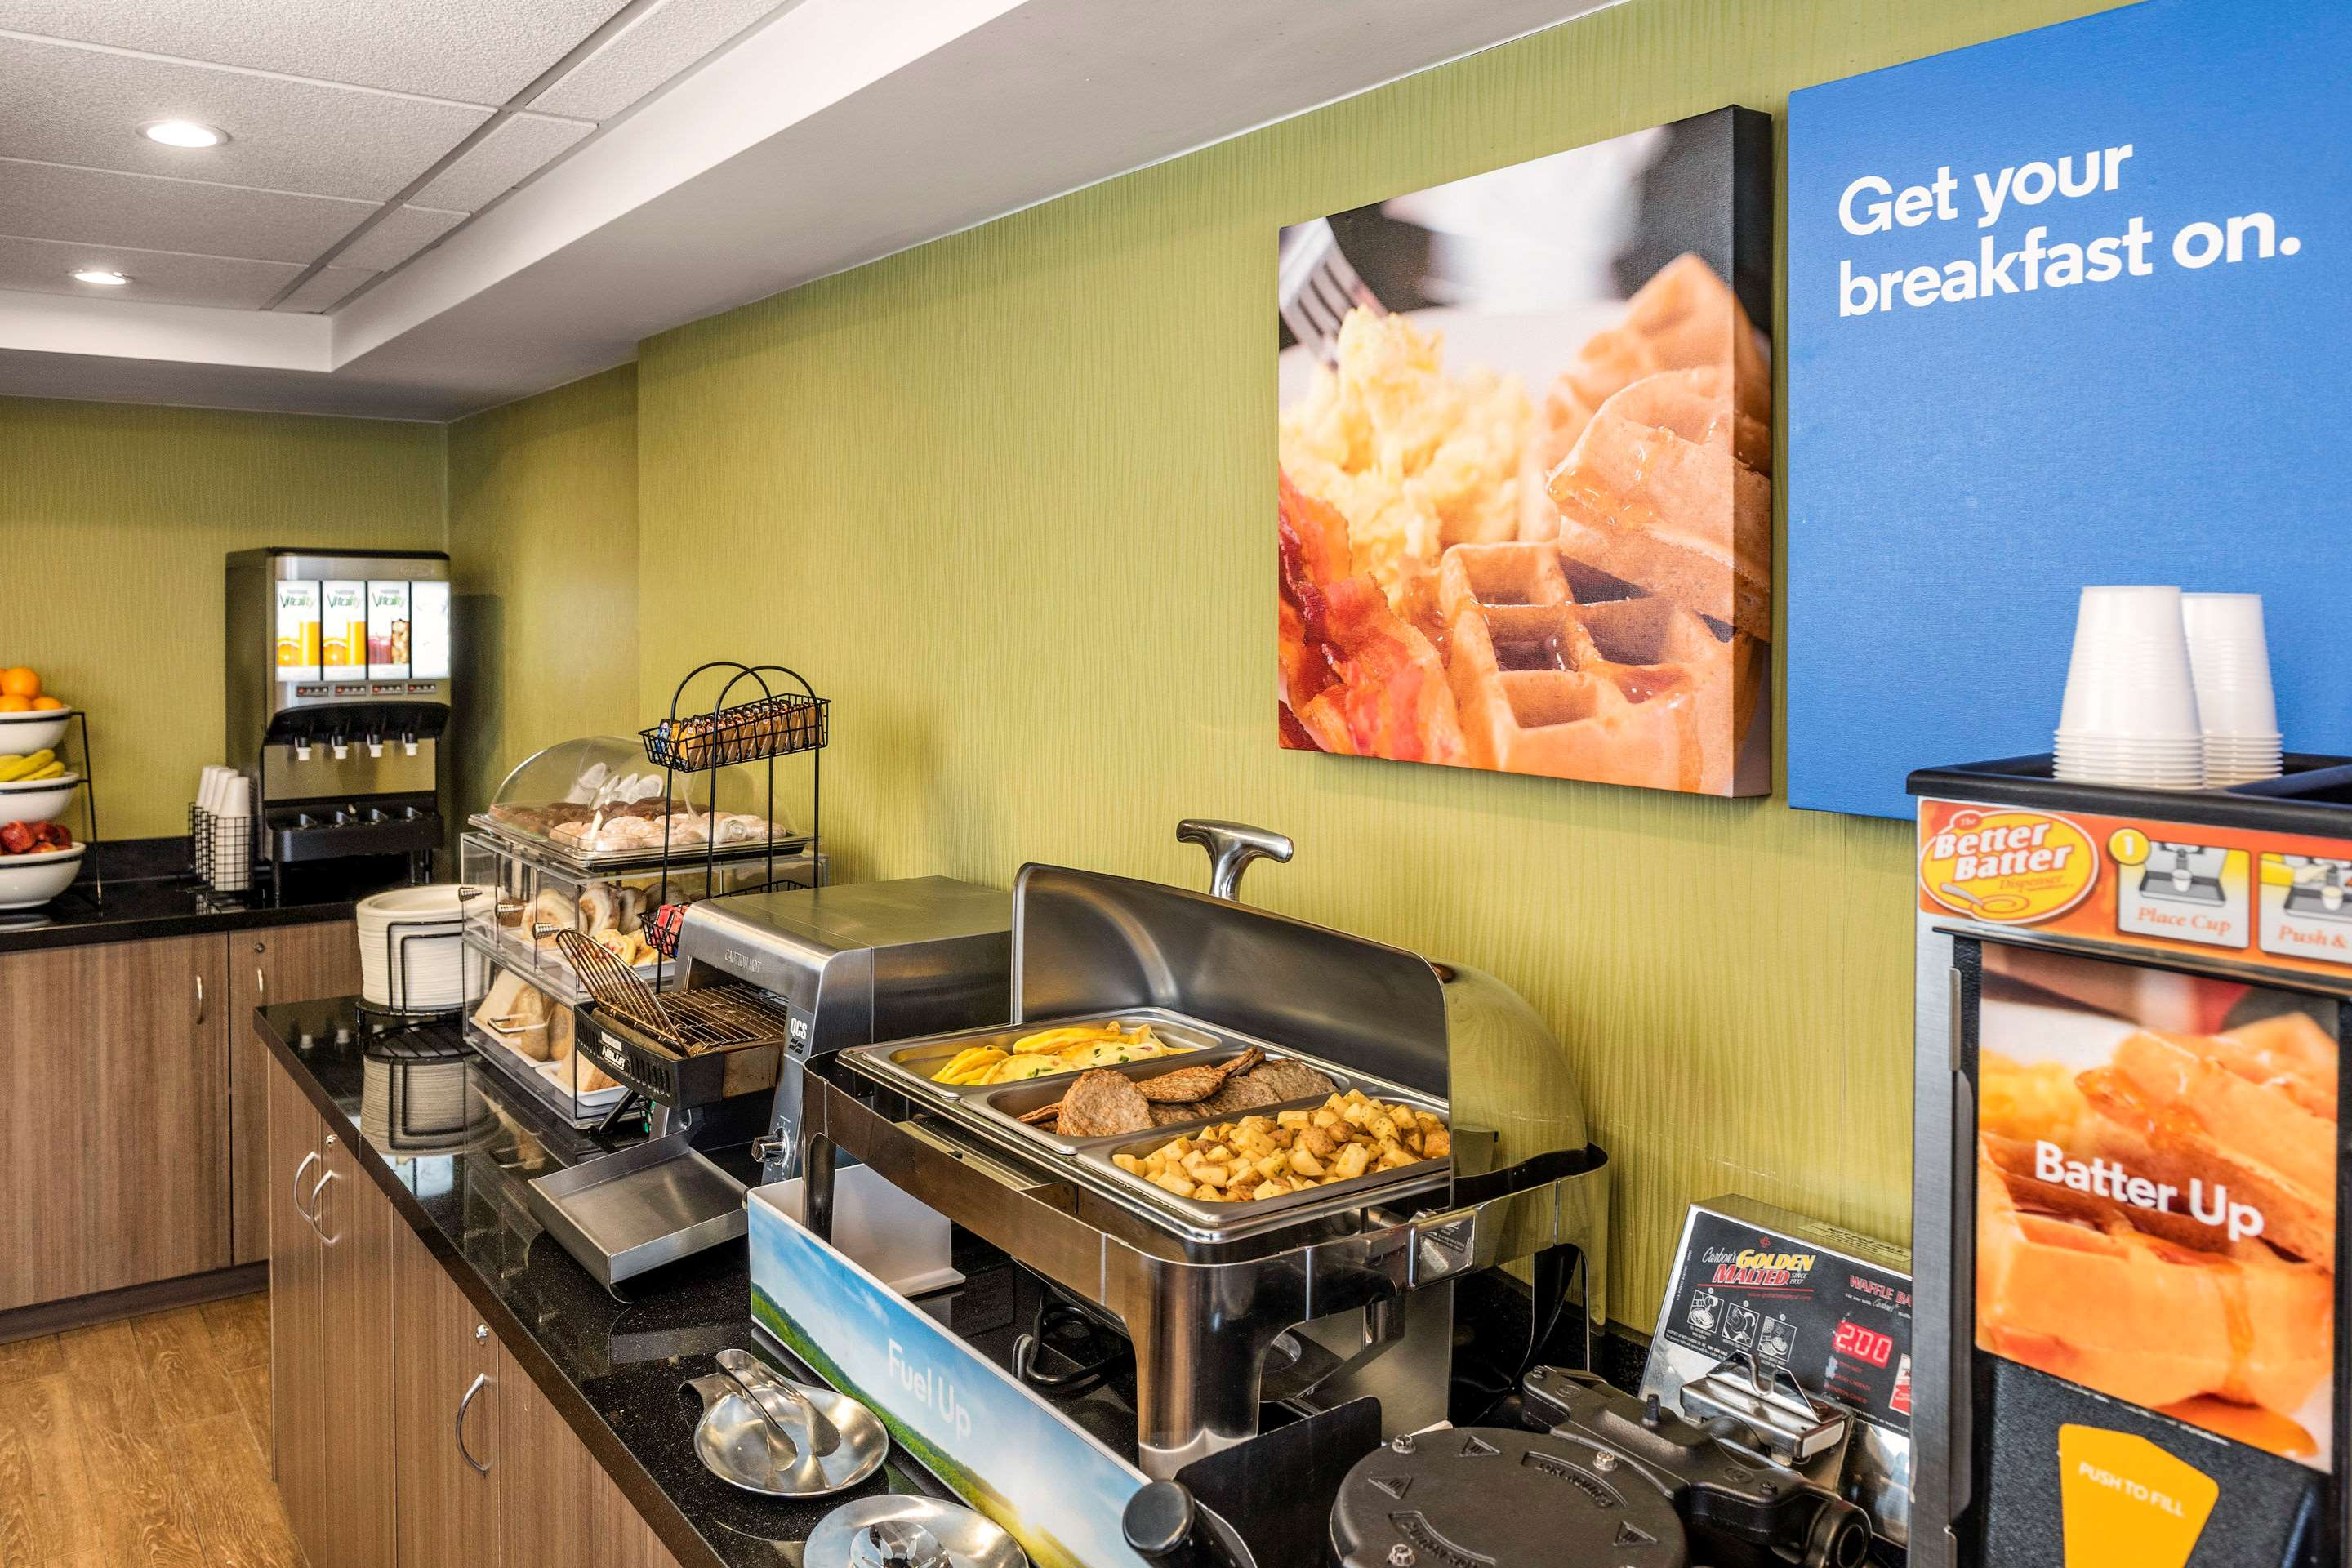 Comfort Inn in Saskatoon: Start Your Day the Right Way